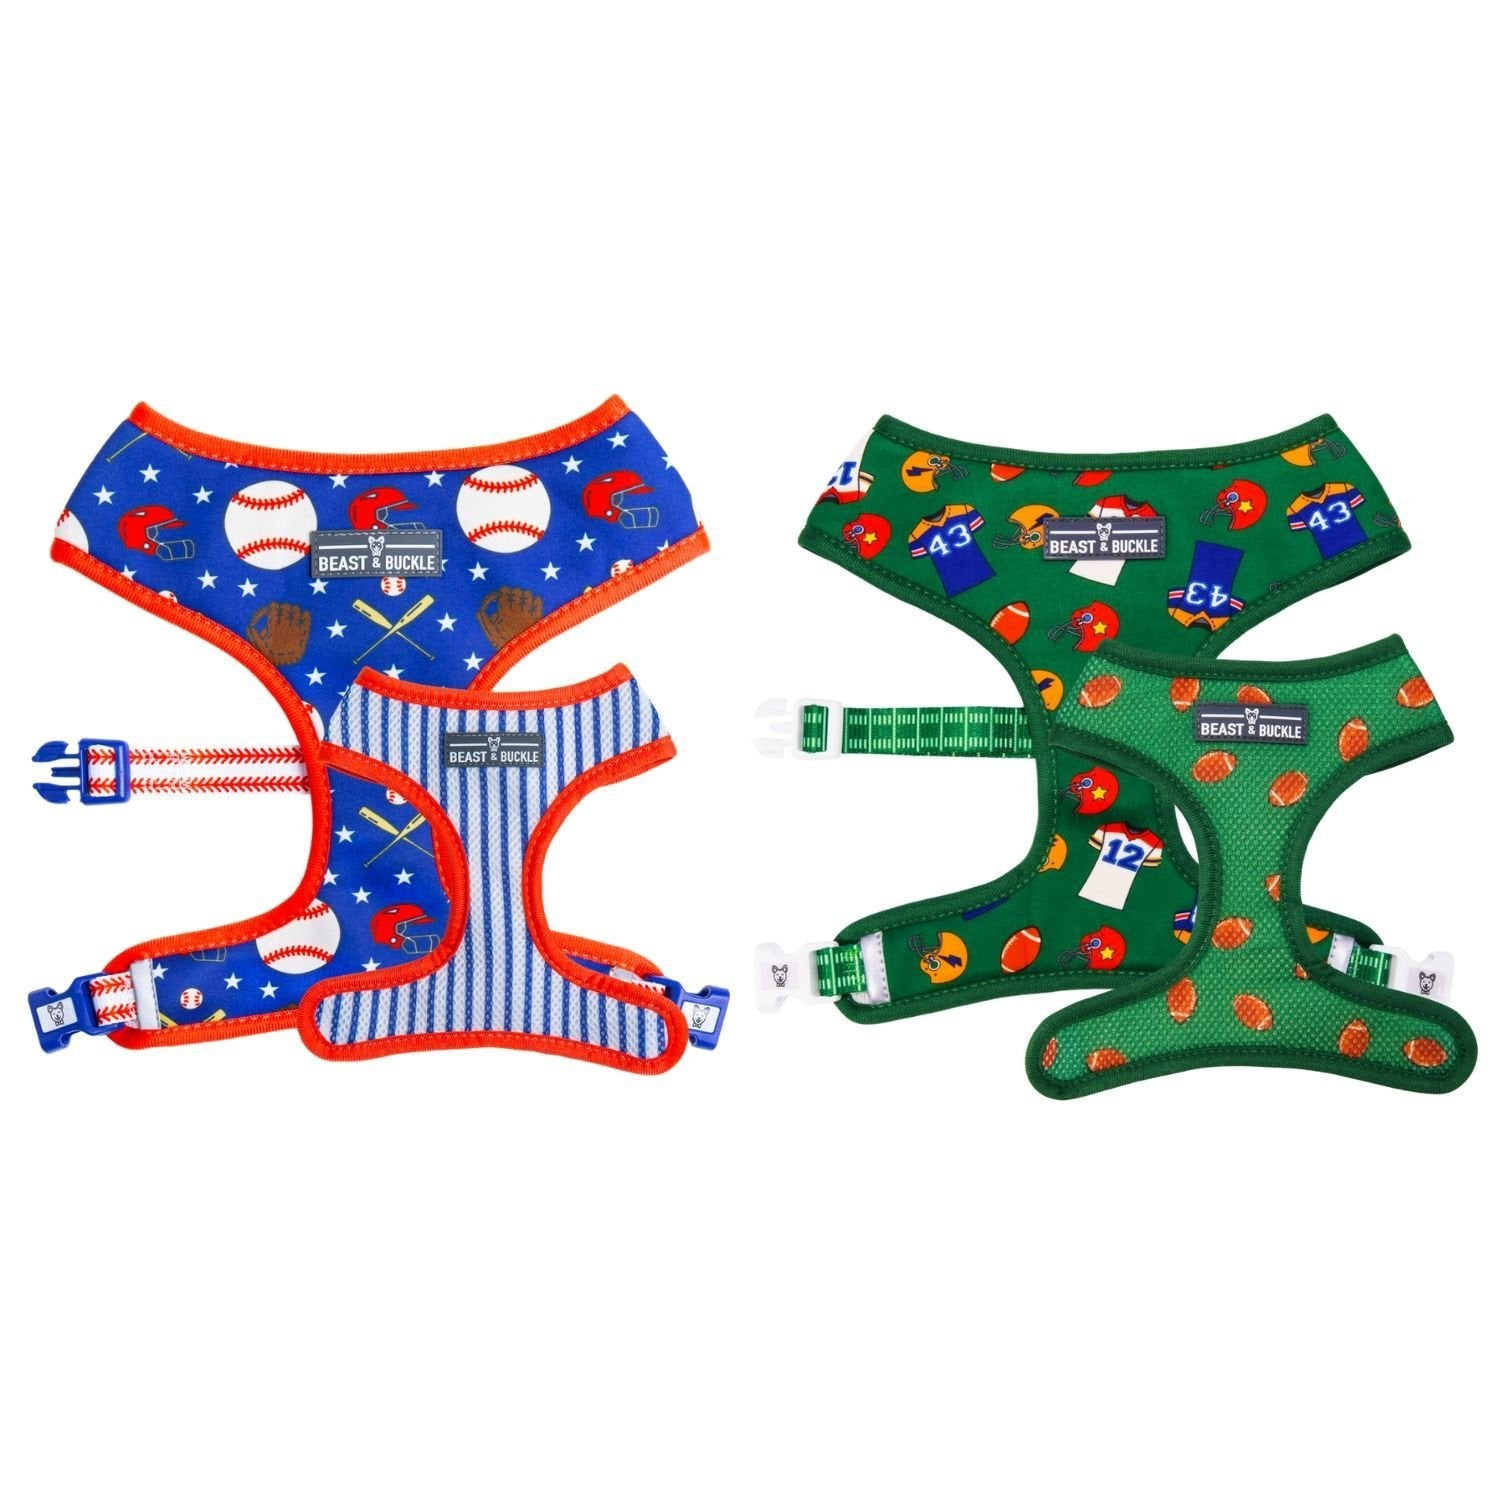 Sports Harness Gift Set - Beast & Buckle